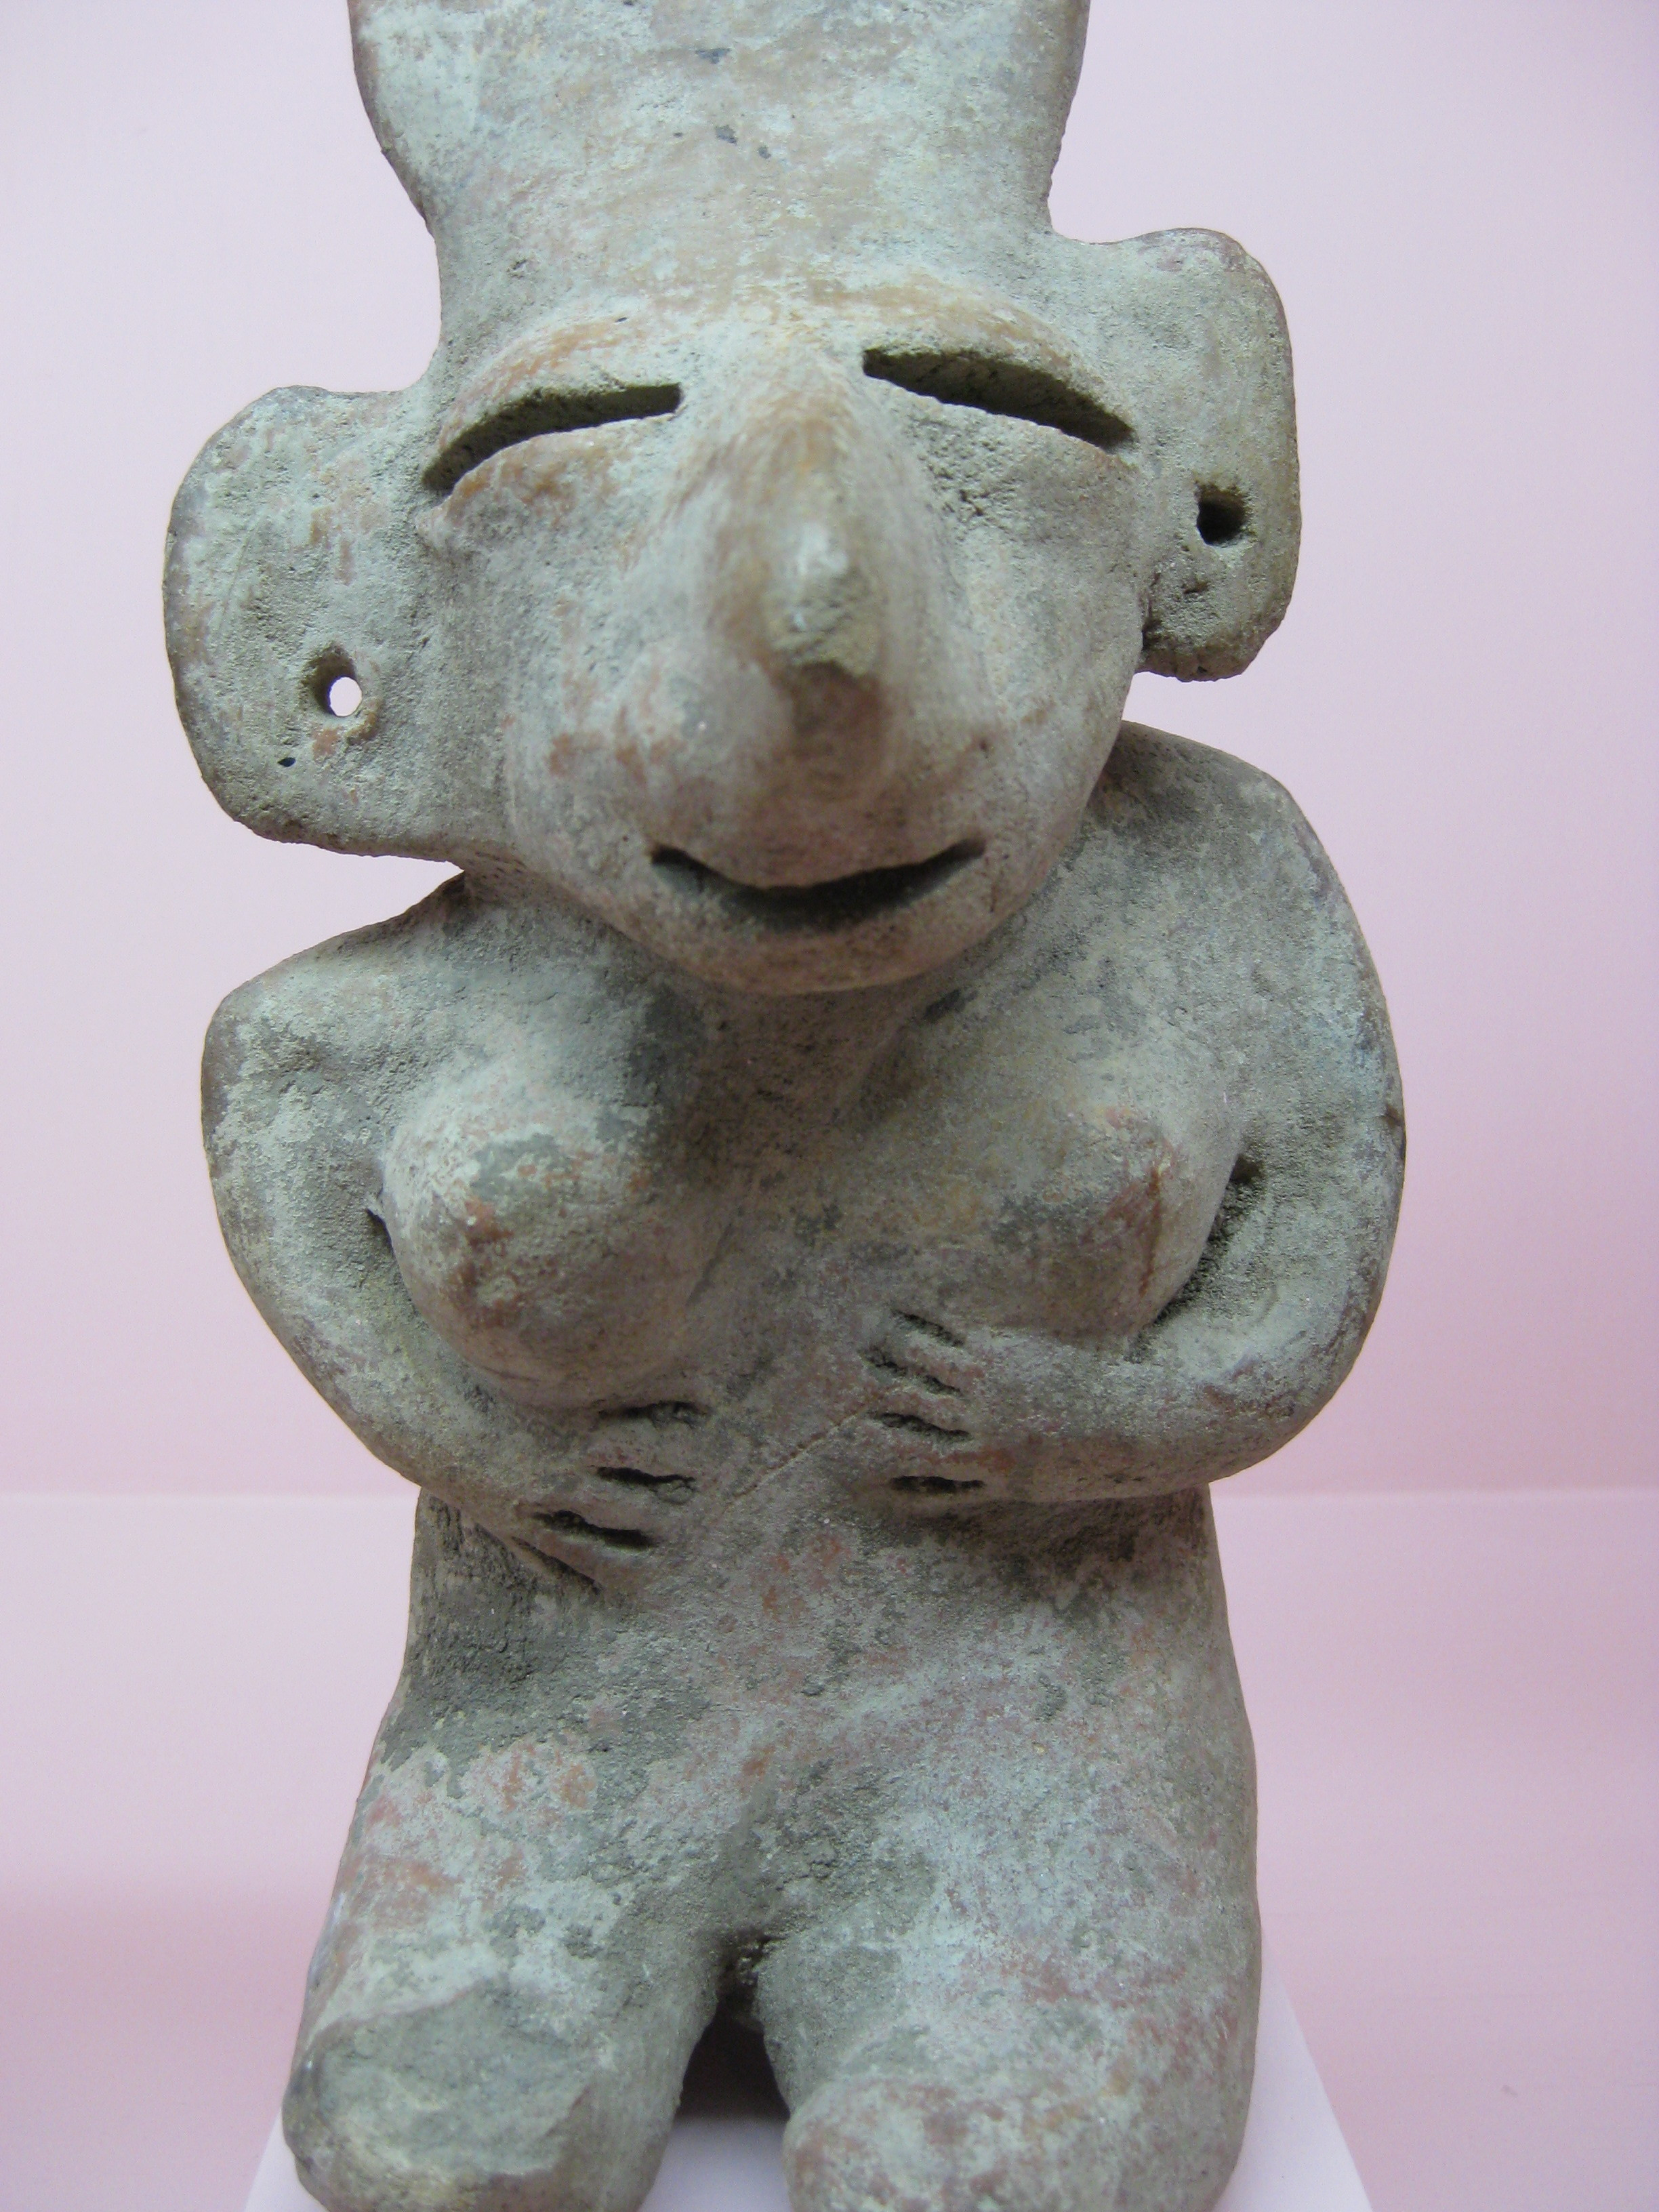 From the Rufino Tamayo Museum, Oaxaca